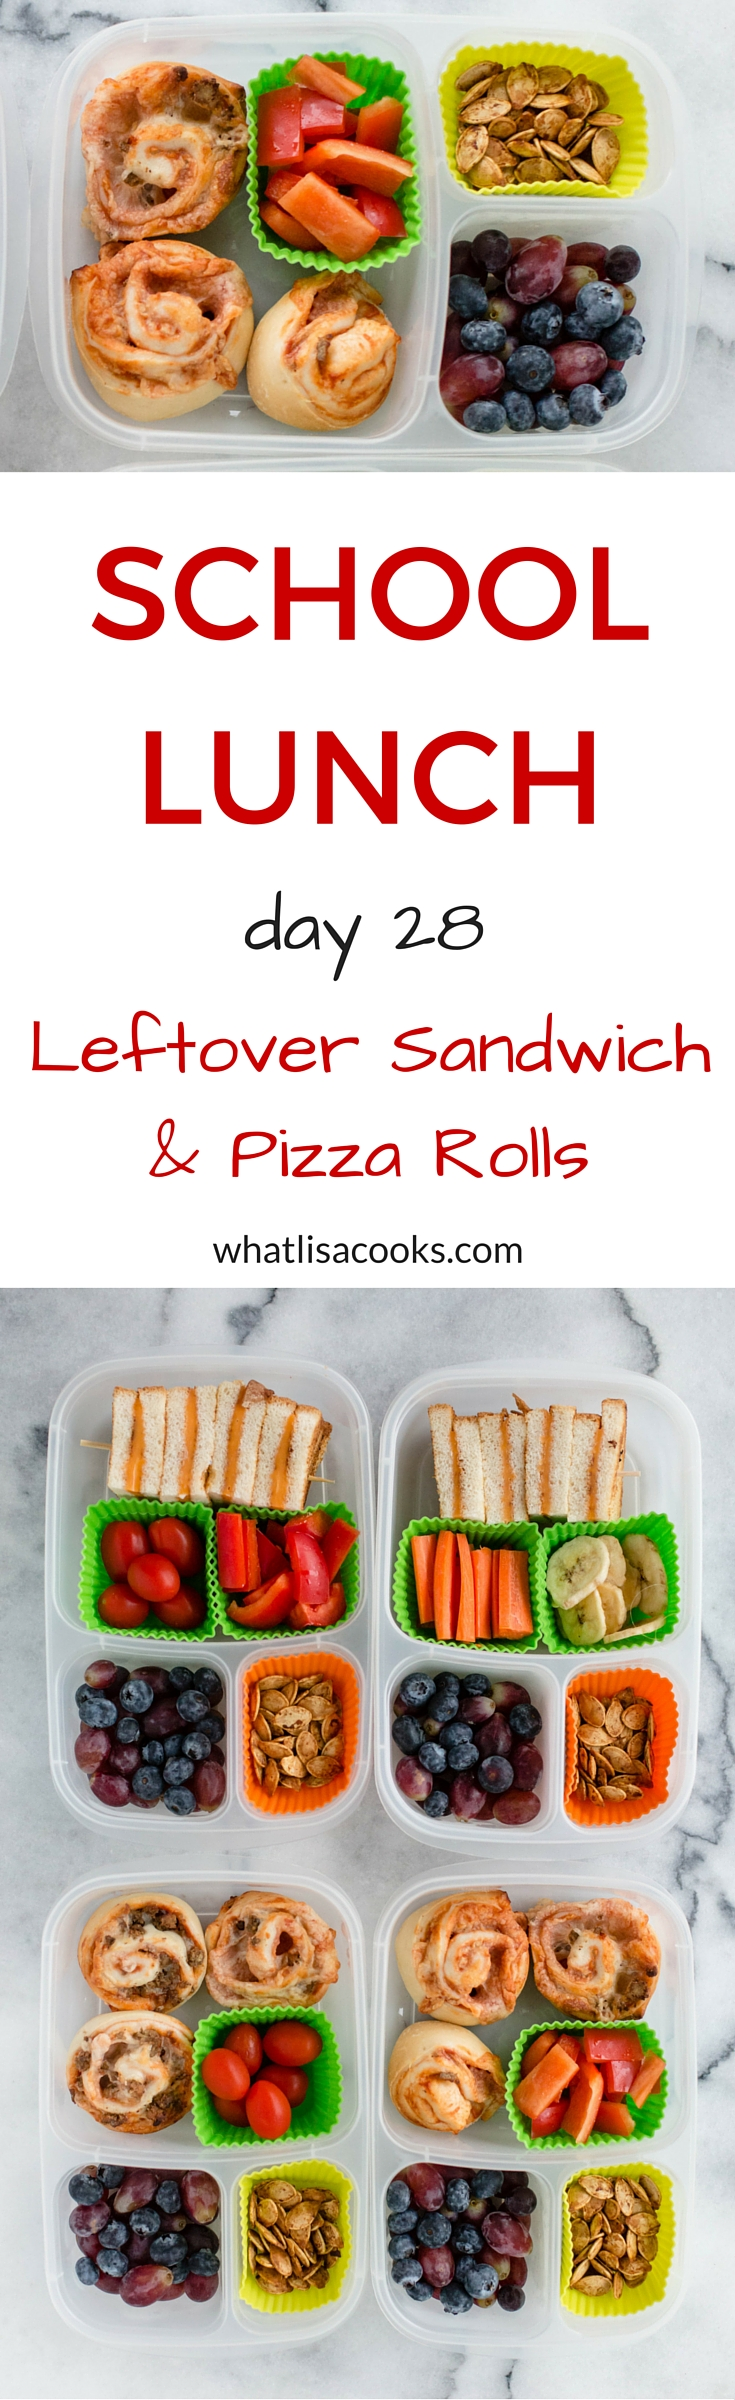 Easy school lunch idea from whatlisacooks.com - use what you have in the fridge and freezer.